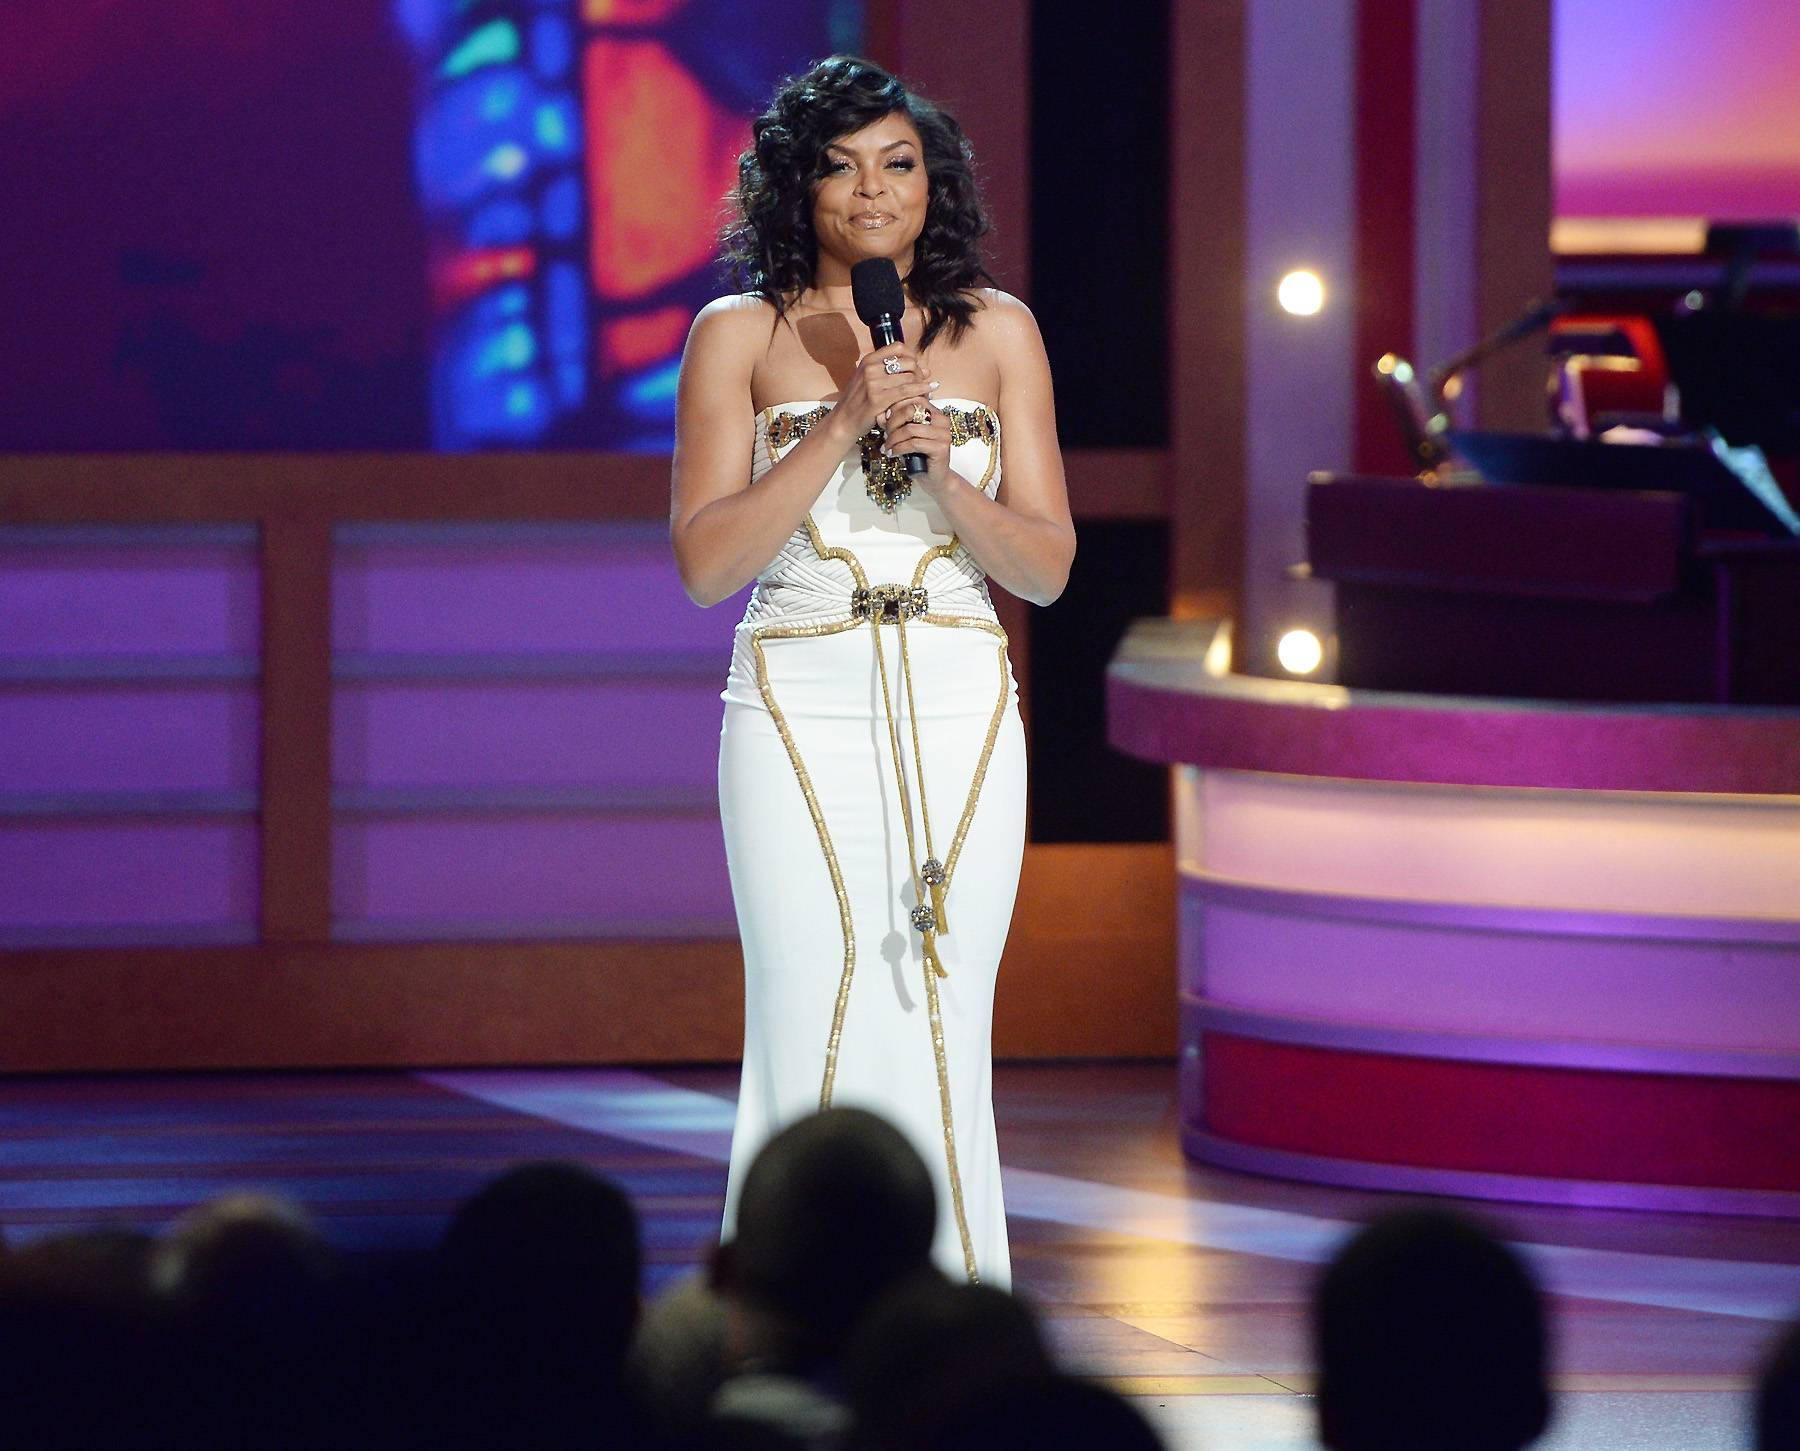 New Host Swag - Taraji P. Henson is met with the audience's warm reception as she takes the stage to spearhead hosting duties.(Photo: Jason Kempin/Getty Images for BET)